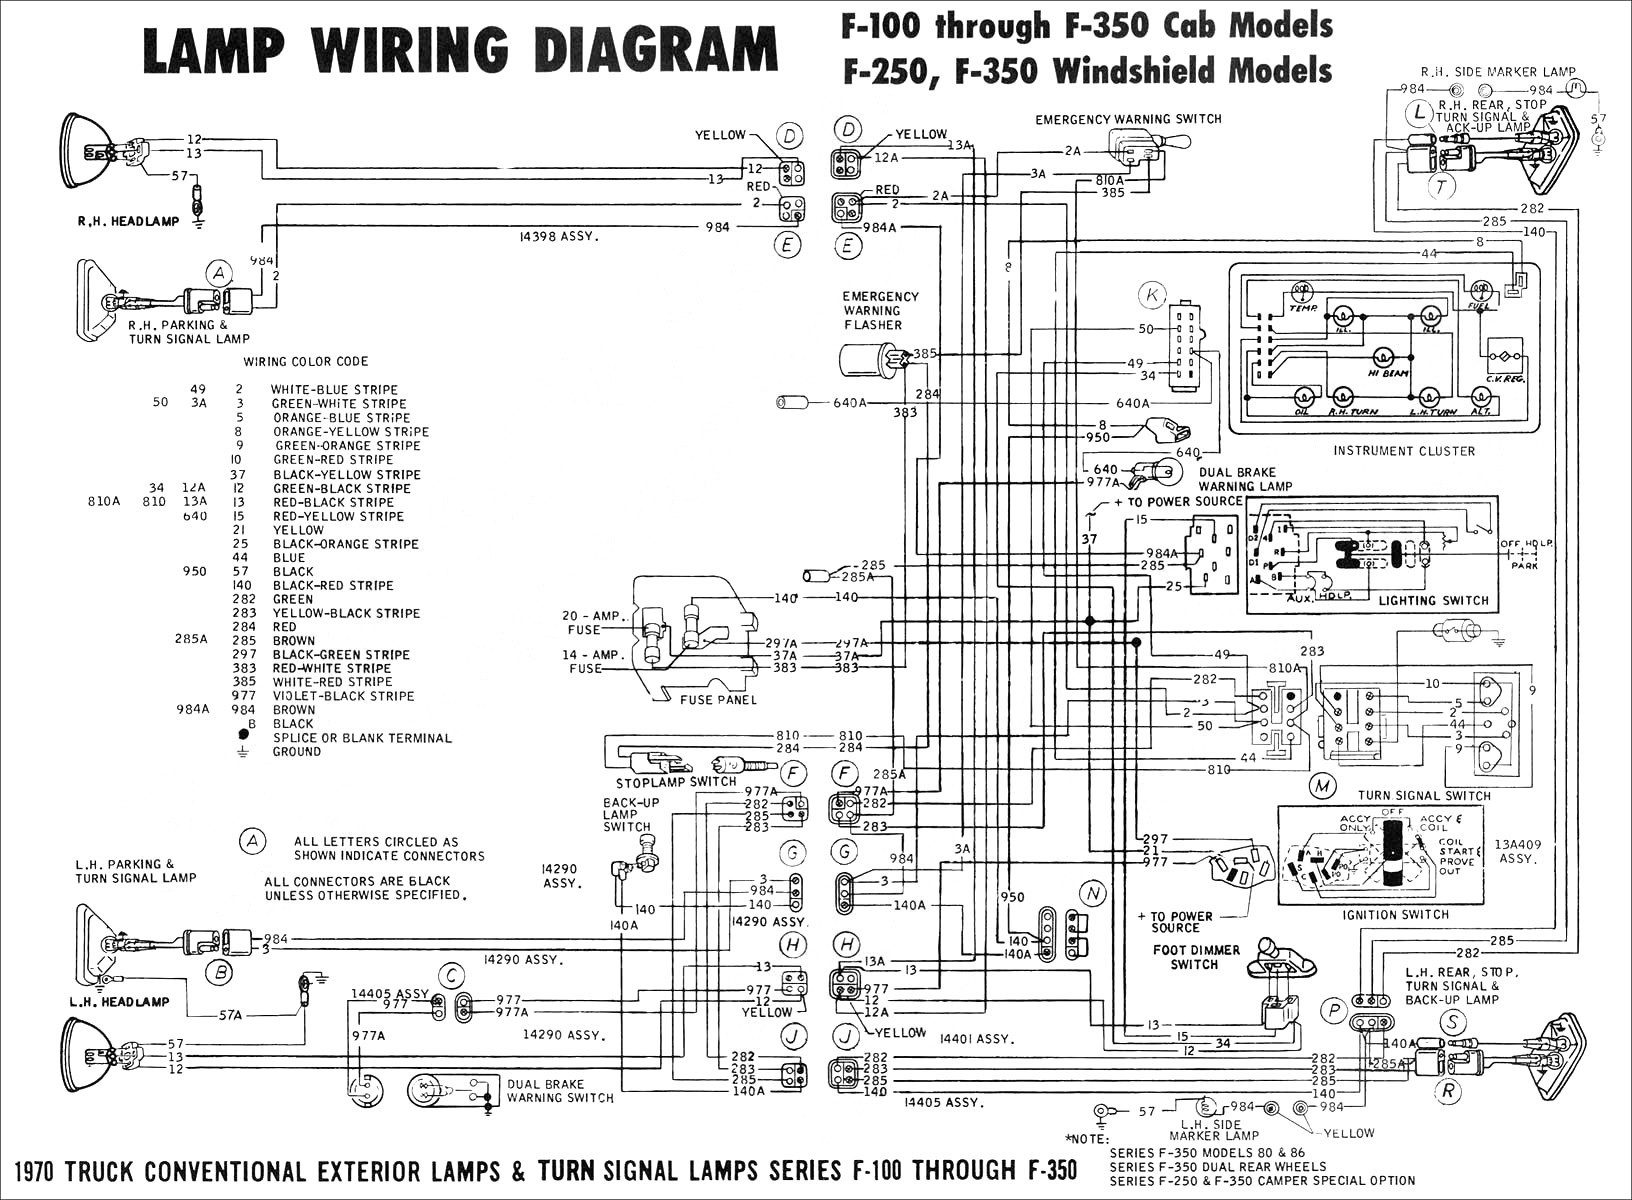 raymond wiring diagram wiring diagram Volvo Truck Wiring Diagrams raymond wiring diagram schematic diagram todayraymond wiring diagram wiring diagram raymond forklift wiring diagram 1977 ford